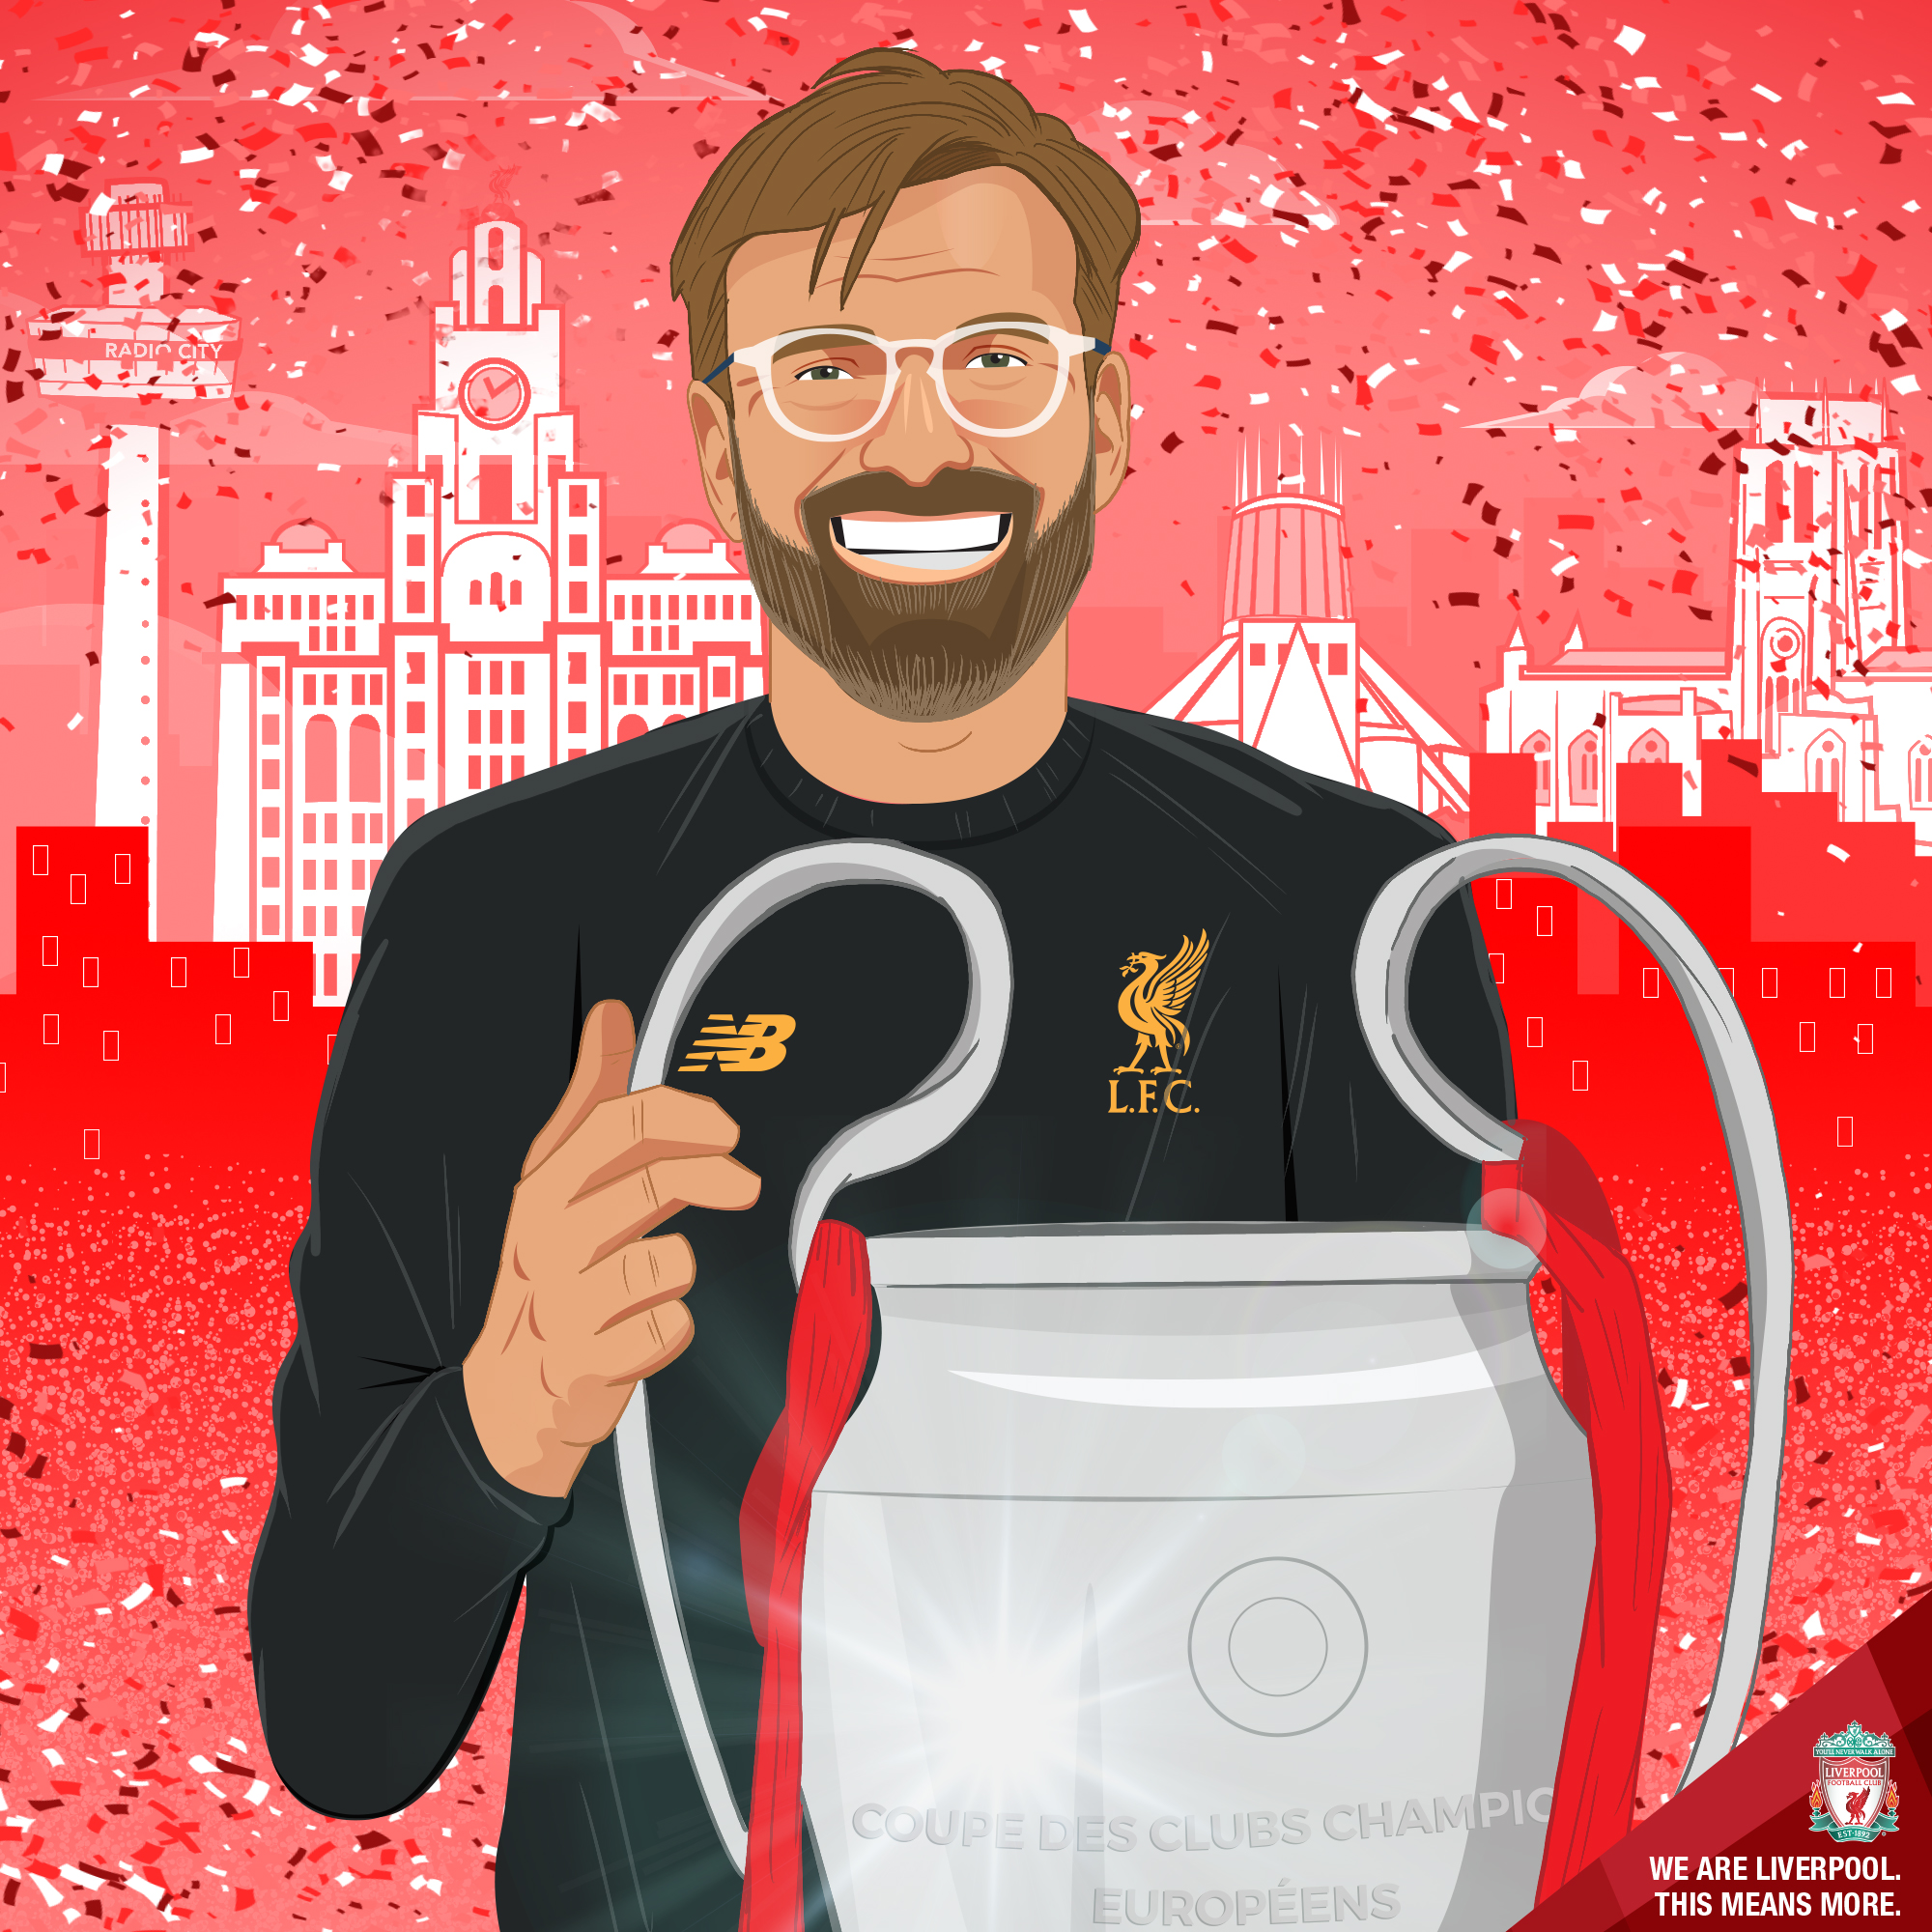 Following on from the trophy win, the club toured the city of Liverpool on an open top bus, proudly displaying the trophy to in excess of 750,000 supporters. This piece was created following that day to celebrate the man who was responsible for turning doubters into believers.    This piece was created by myself.